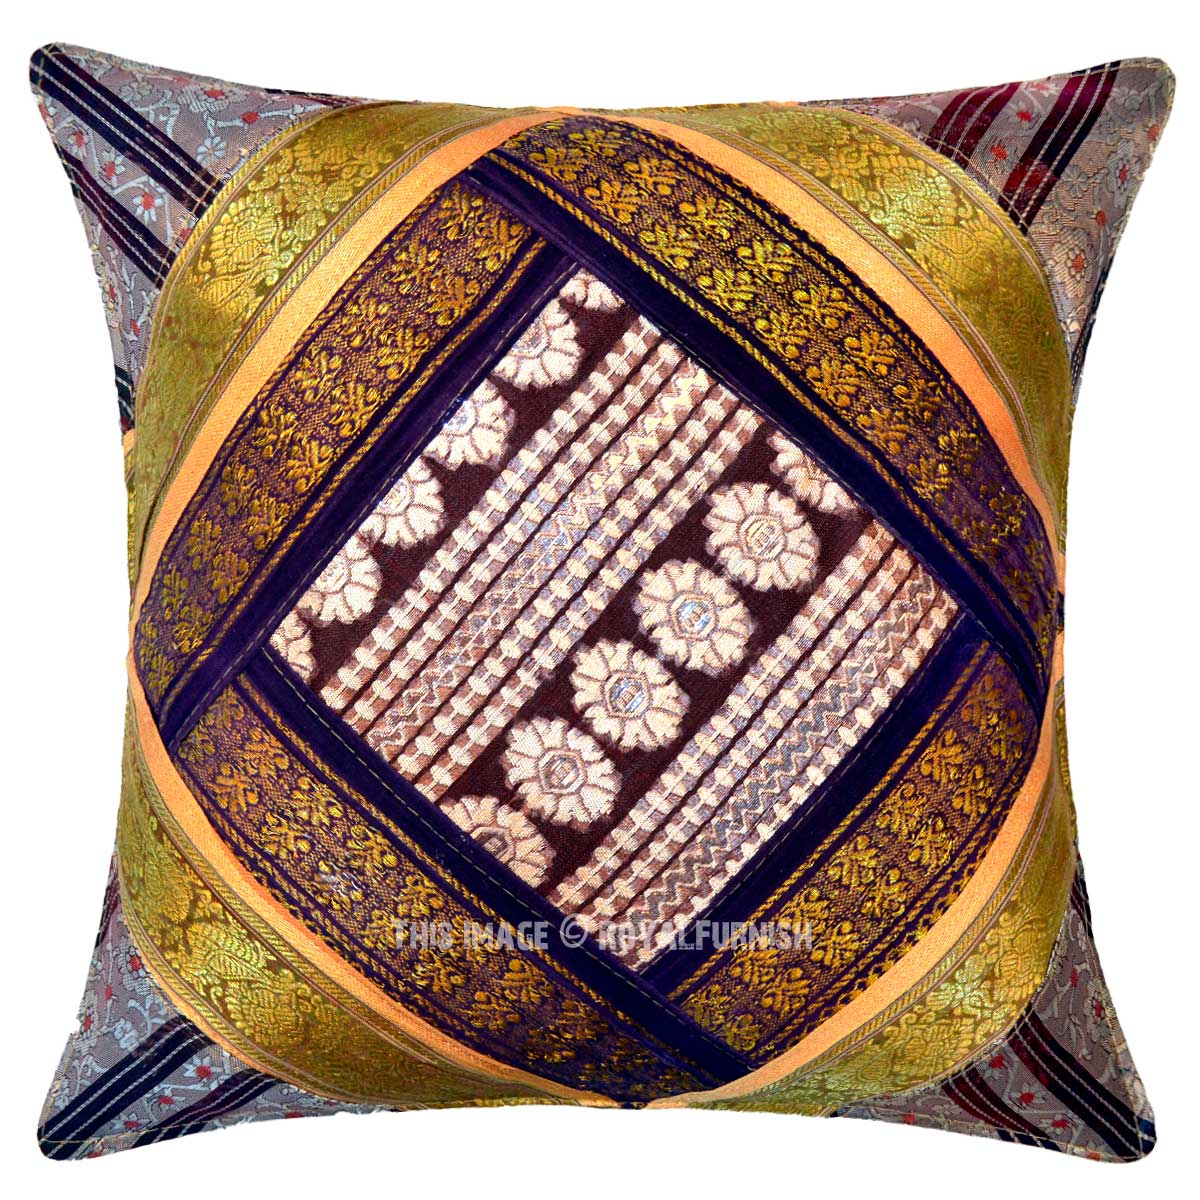 Unique Decorative Accent Pillows : Multi Decorative Silk Sari Unique One-Of-A-Kind Throw Pillow Cover 16X16 Inch - RoyalFurnish.com